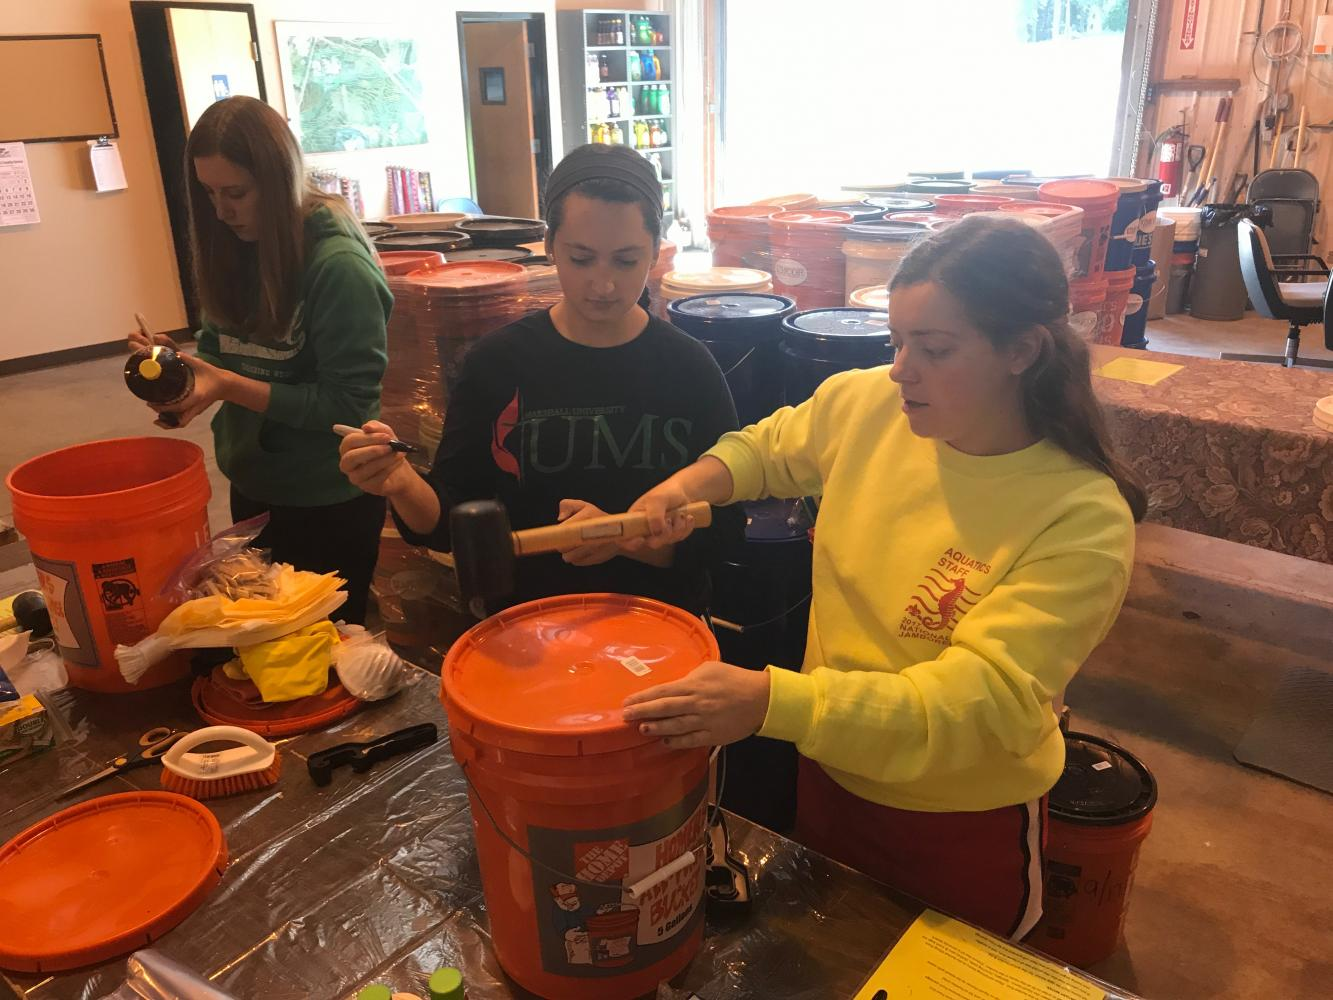 United Methodist Students members and Marshall University sophomores (from left to right) Kayleigh Terrel, Jennifer Gerst and Betsy Horton mark up items and hammer down lids on flood buckets to be sent to survivors of Harvey and Irma hurricanes.